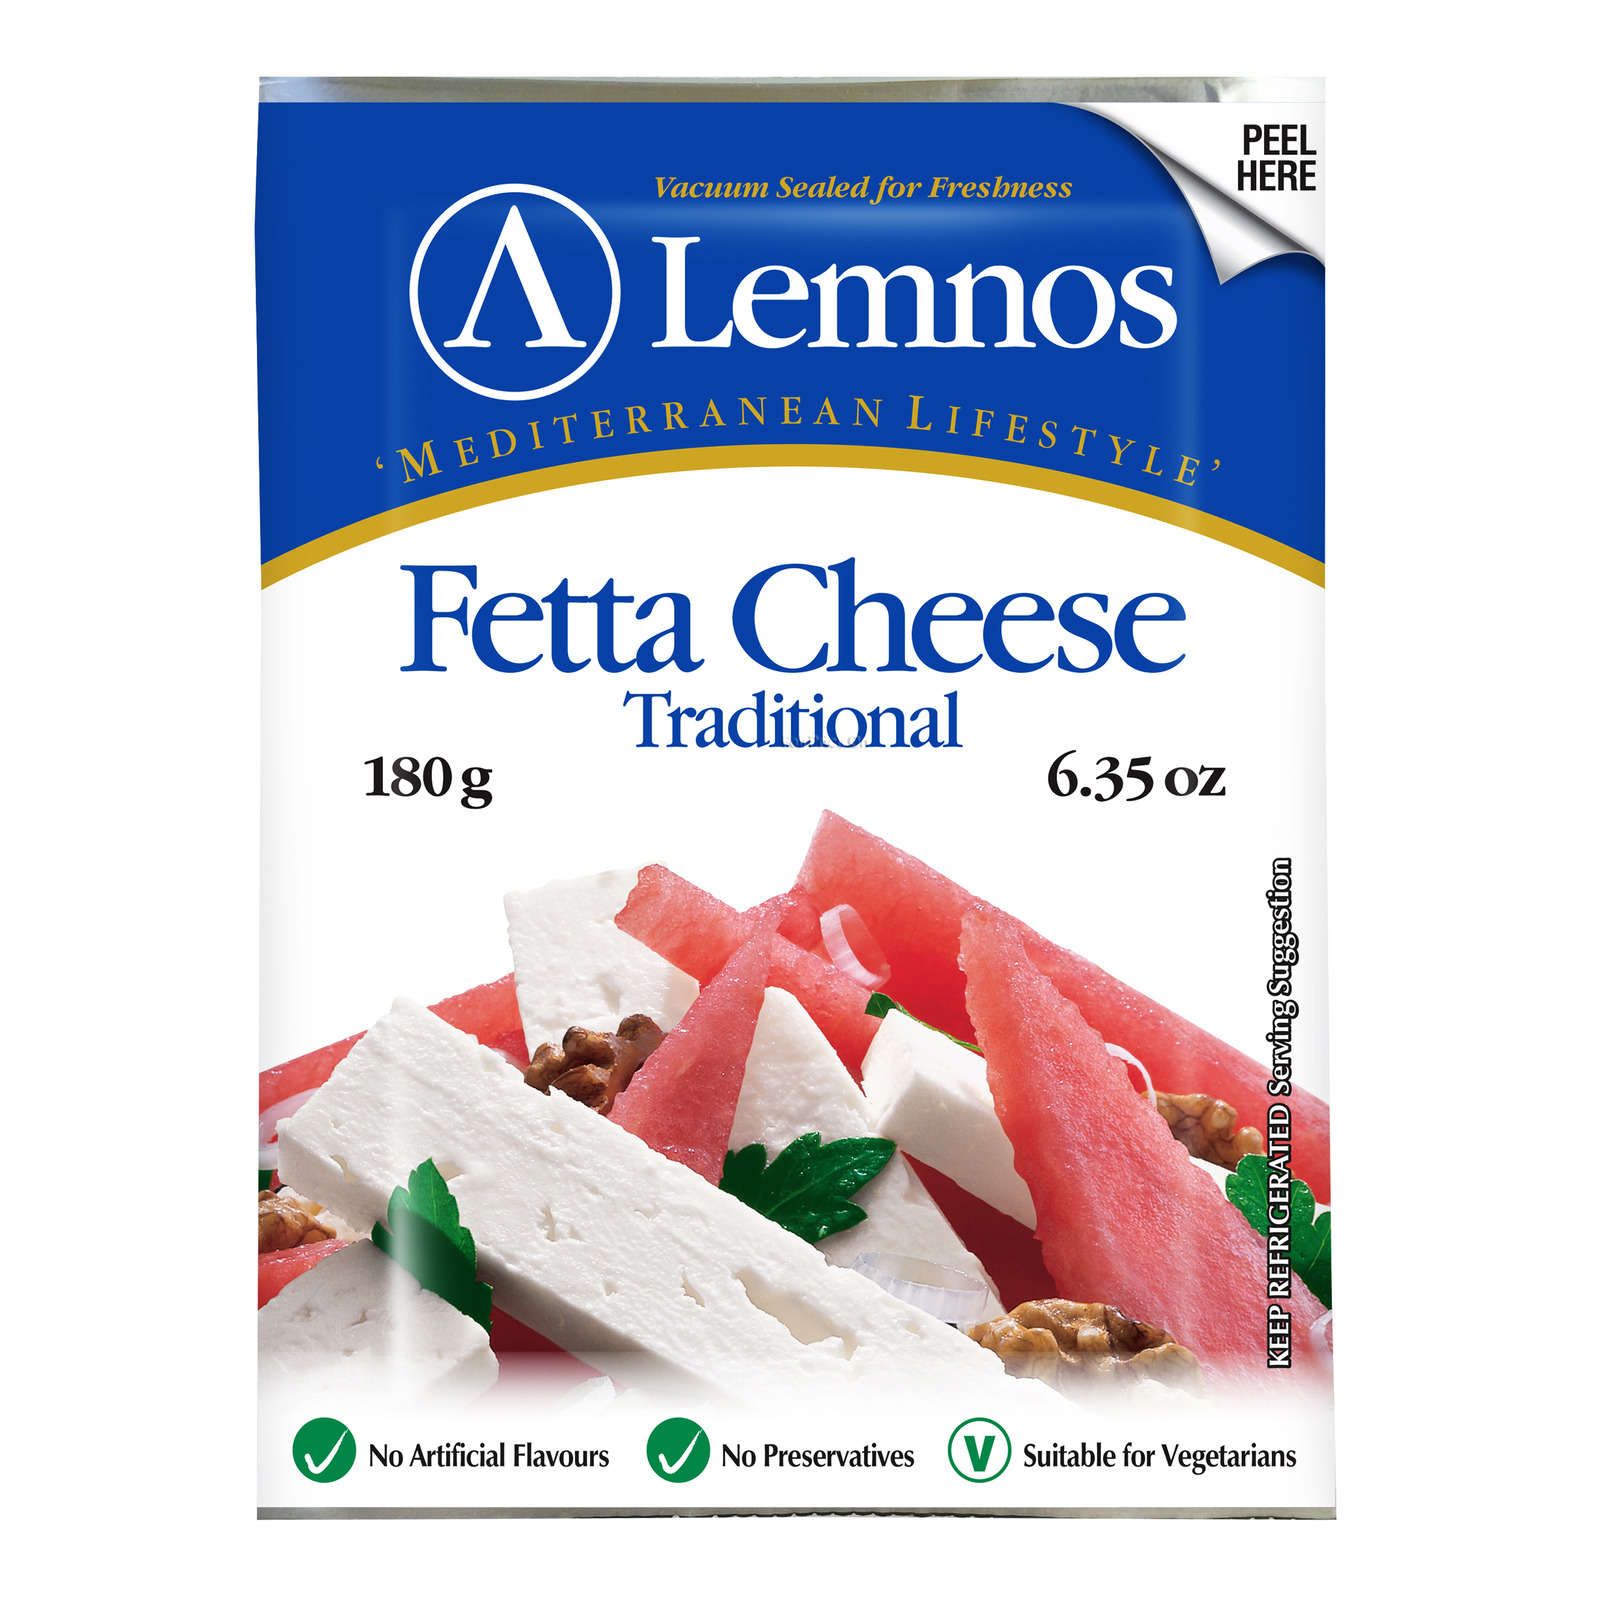 Lemnos Fetta Cheese - Traditional